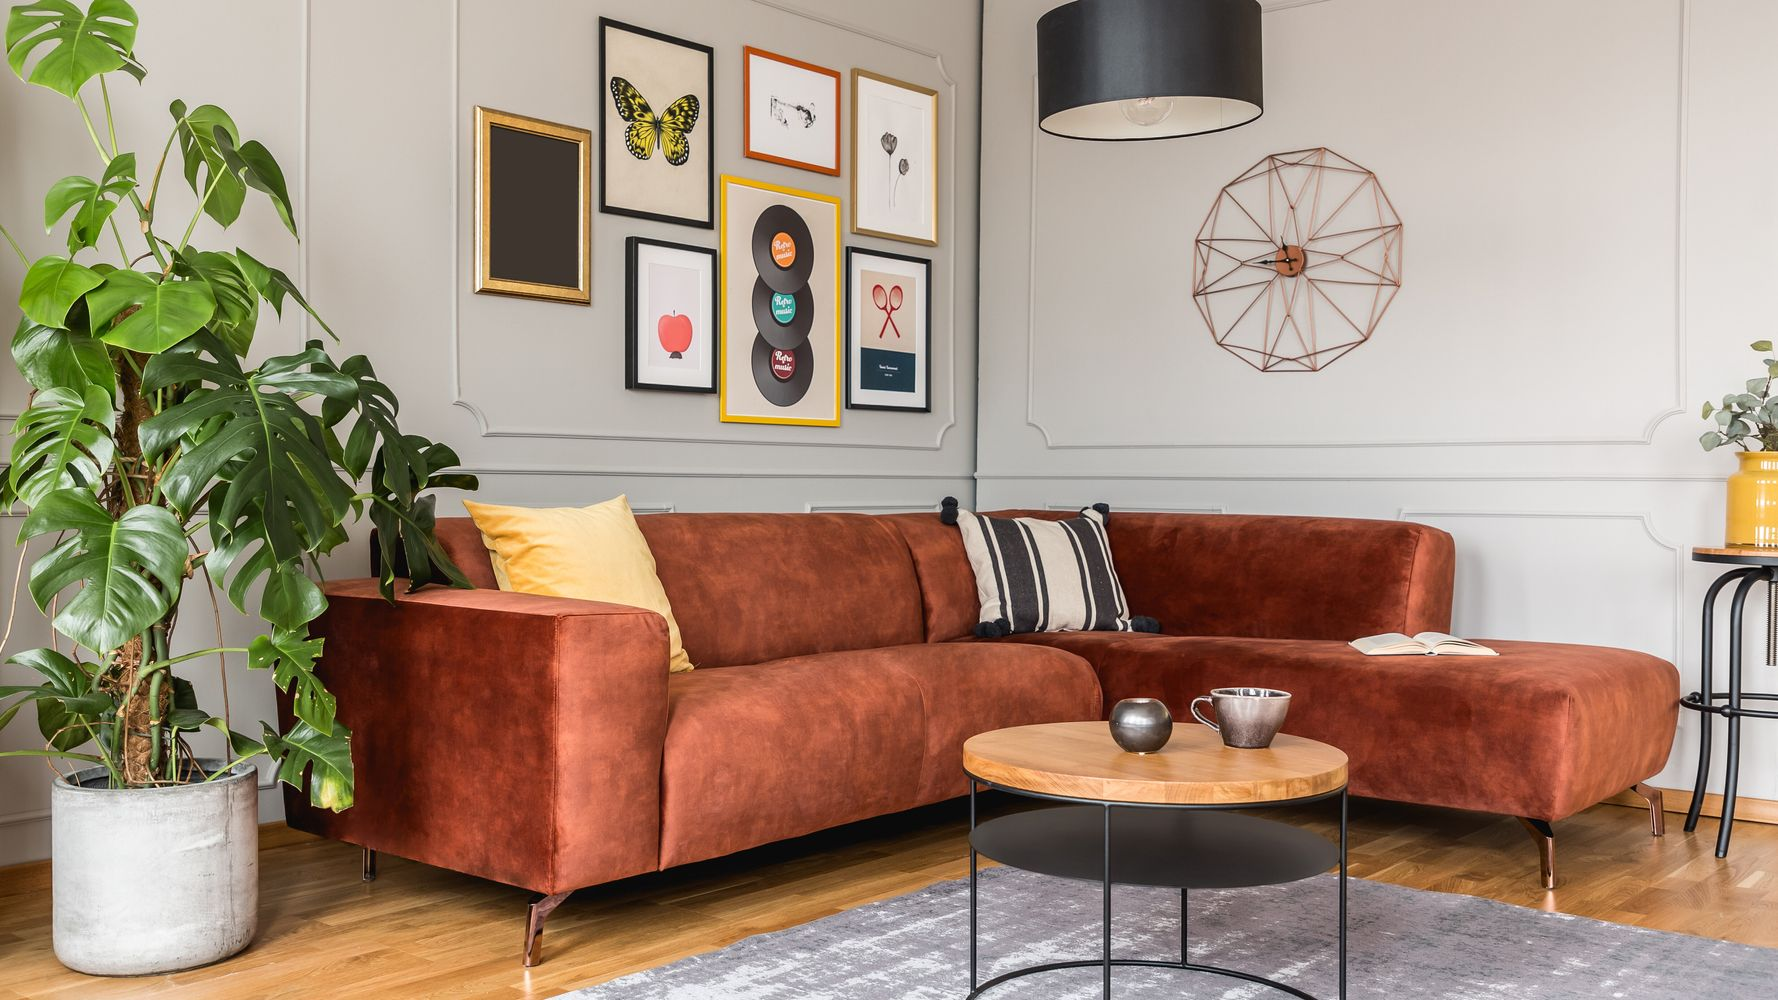 The 32 Best Websites For Furniture And Decor That Make Decorating ...